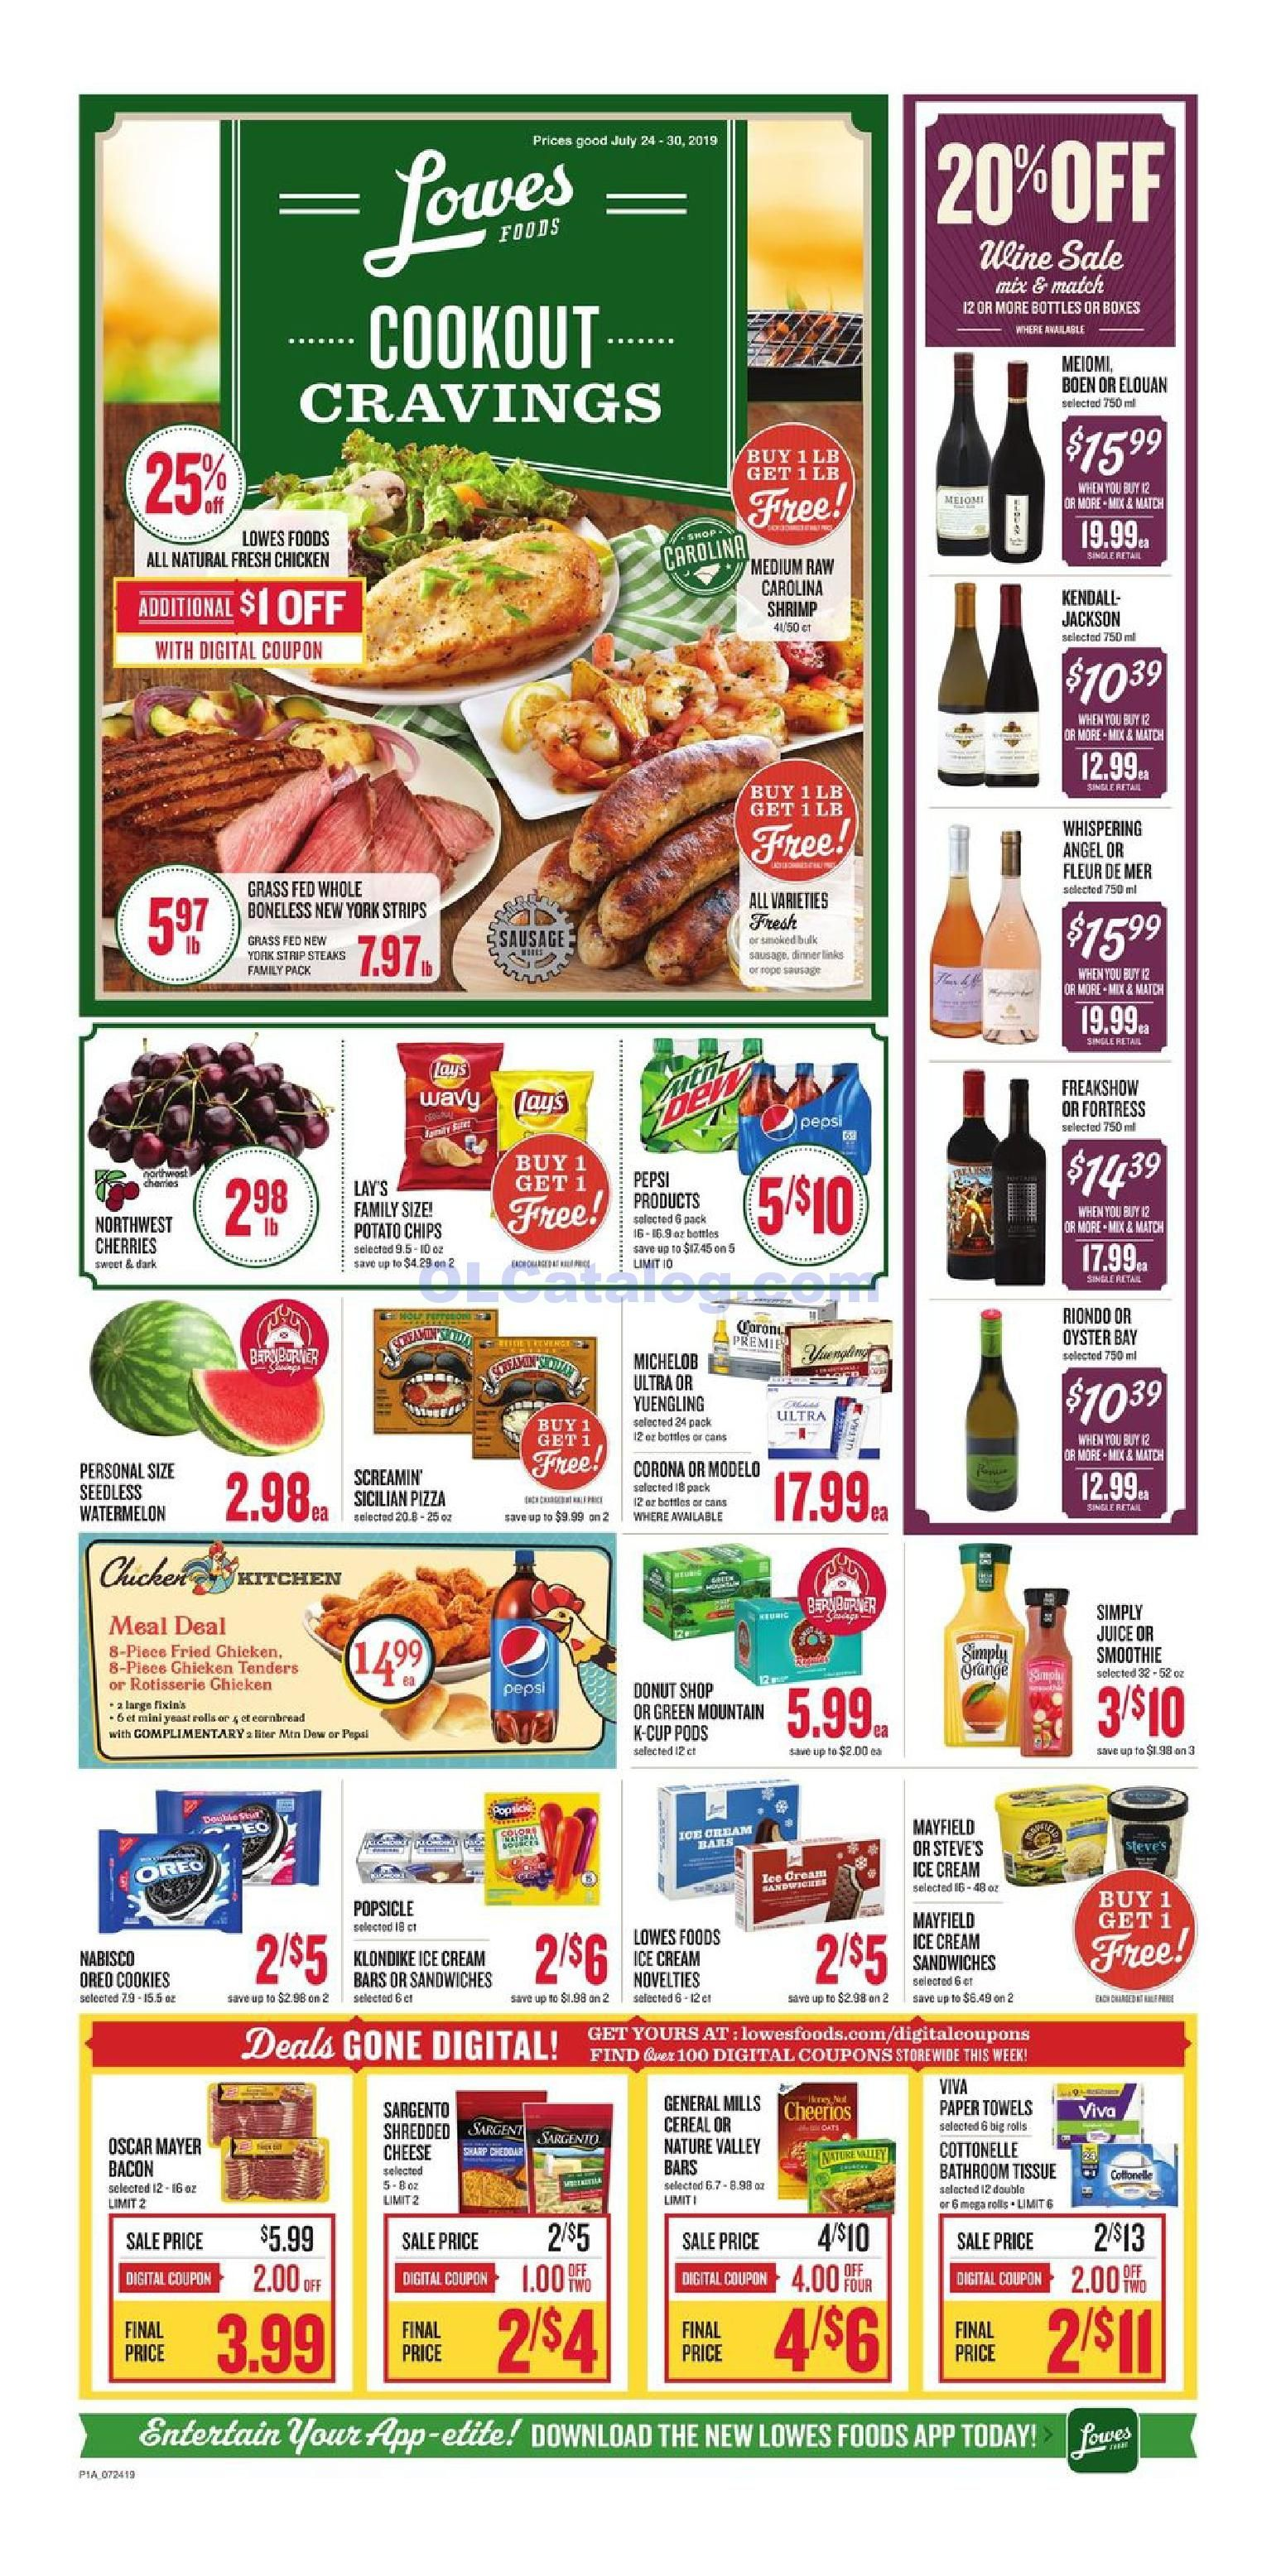 Lowes foods Weekly Ad July 24 30, 2019. View the Latest